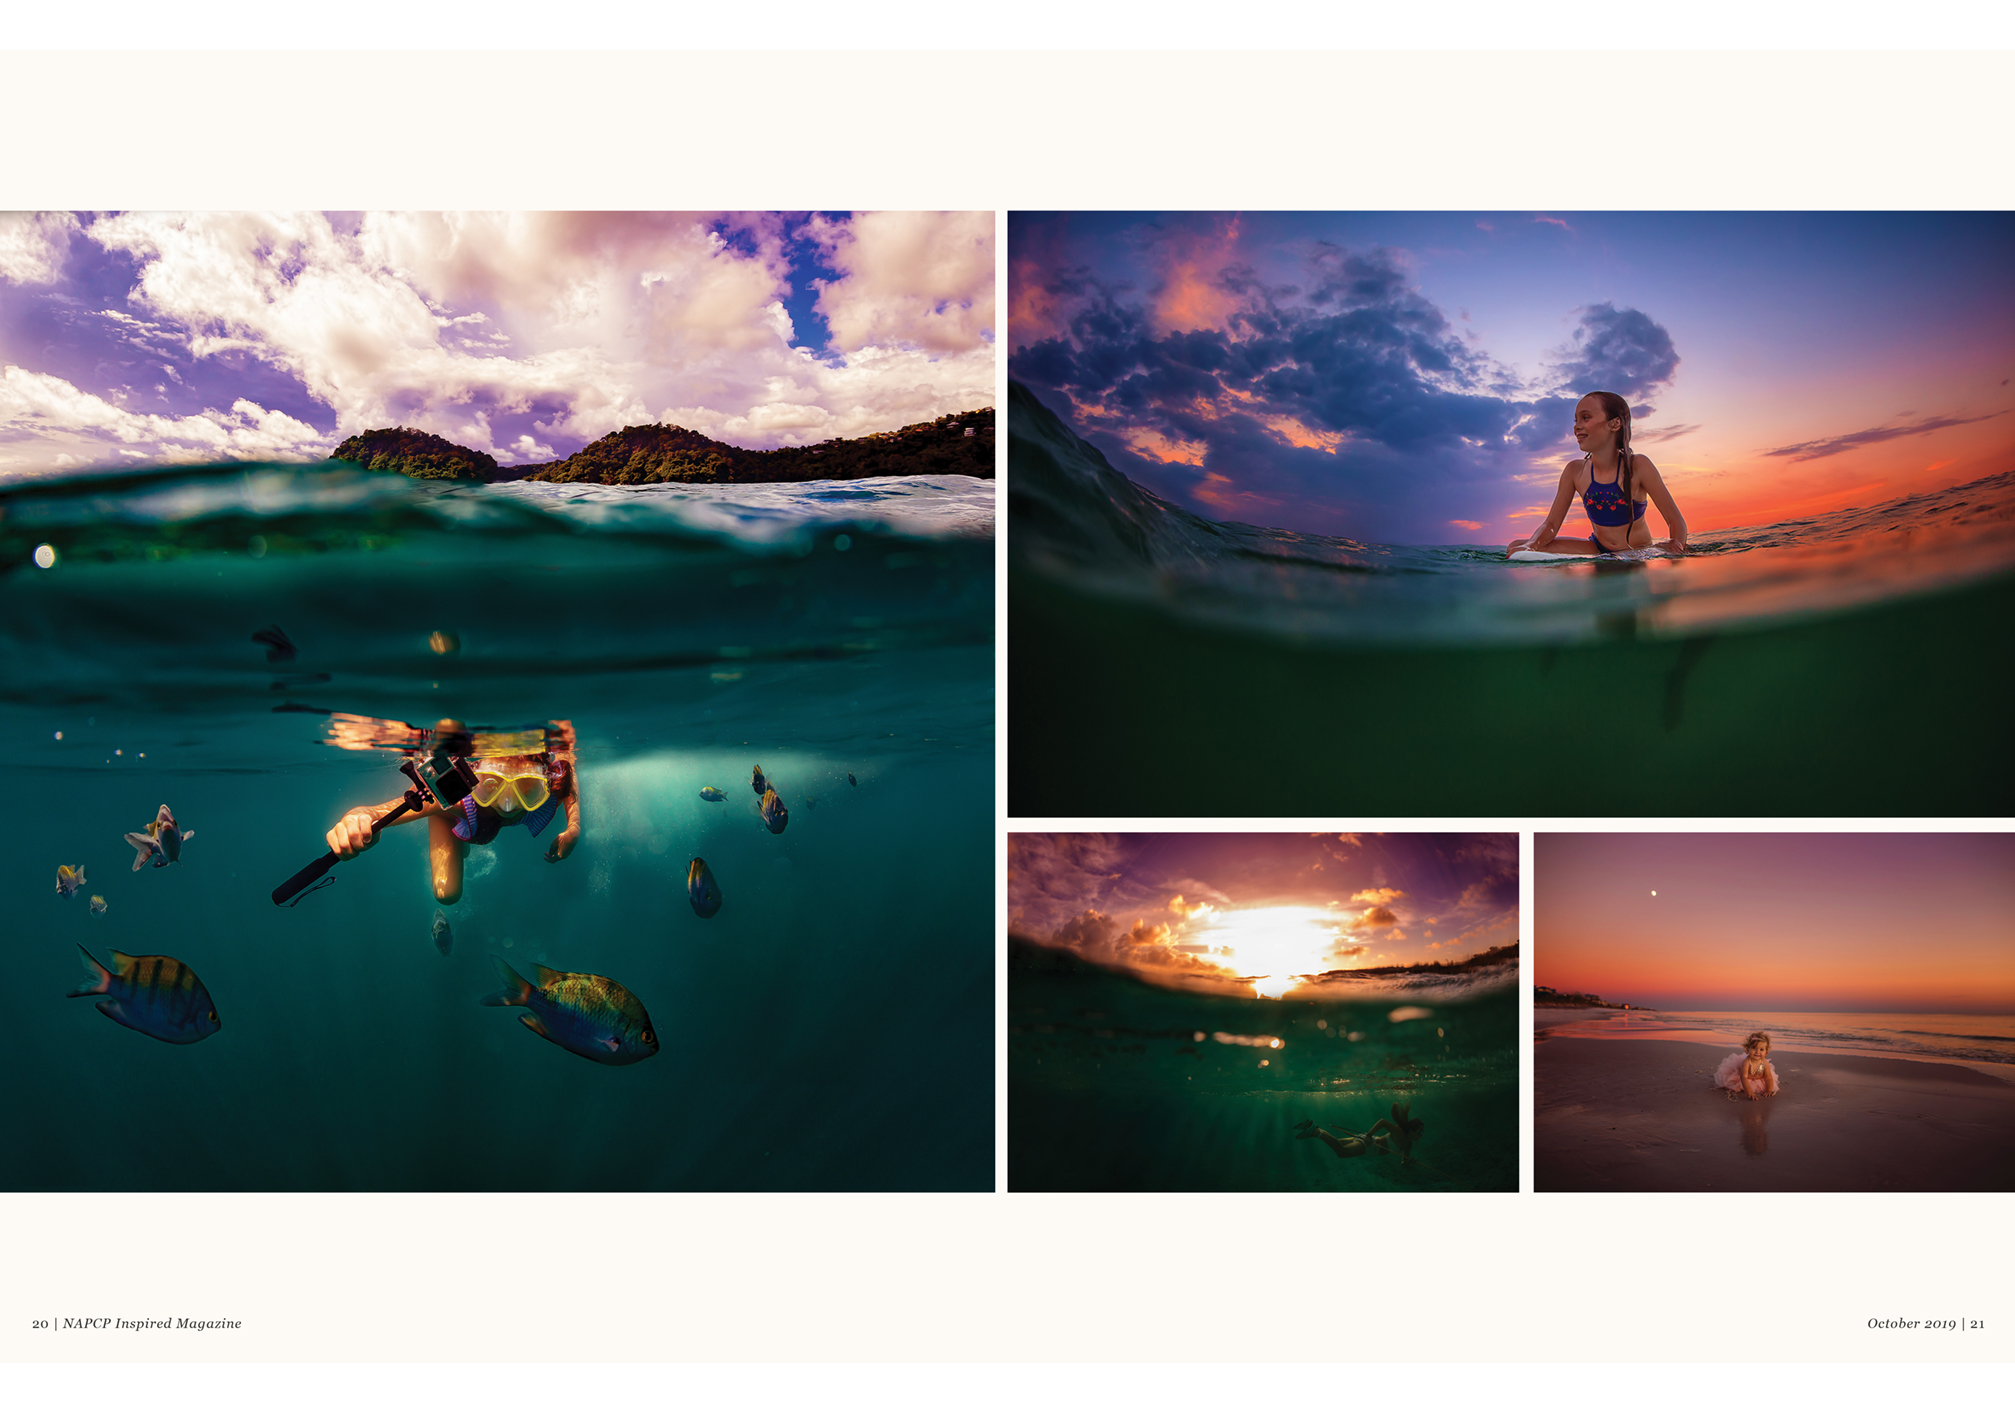 underwater imagery spread photographed by Kansas Pitts